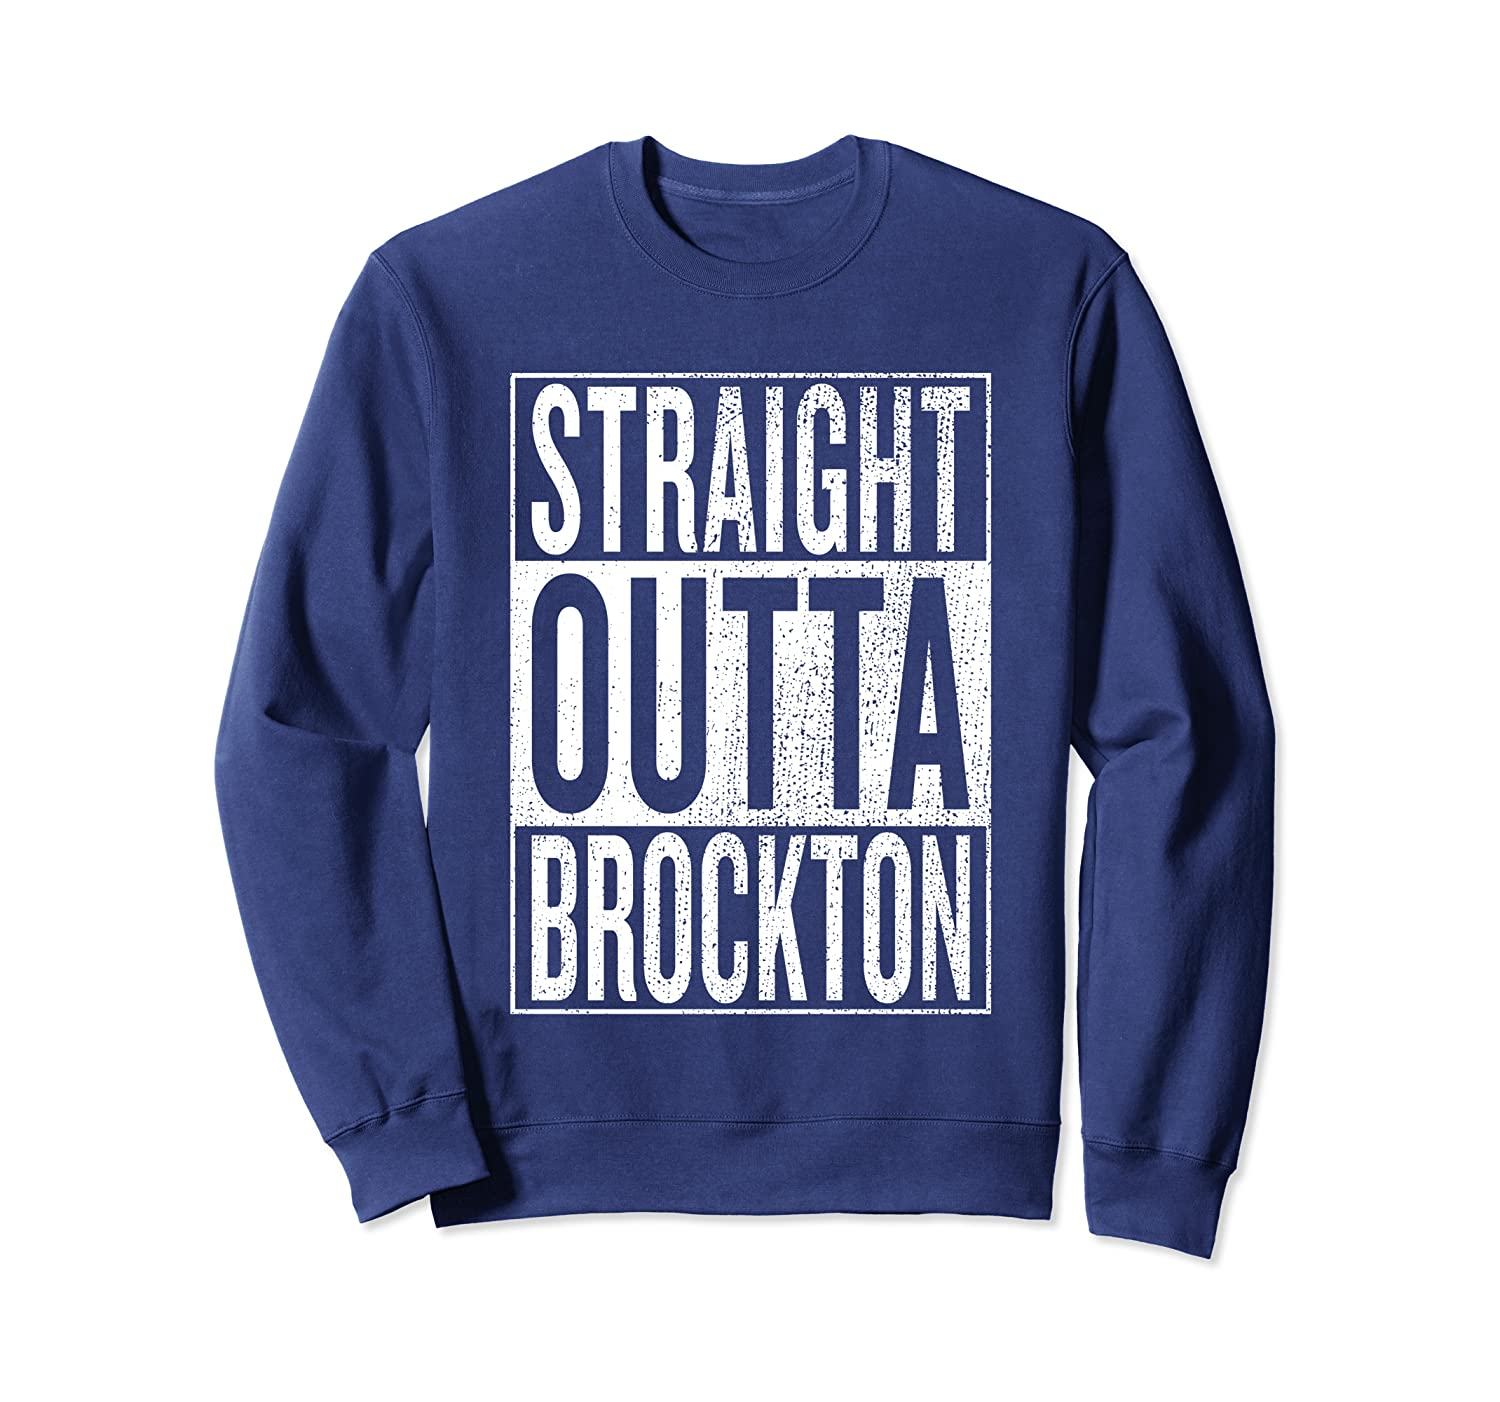 Straight Outta Brockton Great Travel Outfit And Gift Idea Sweatshirt